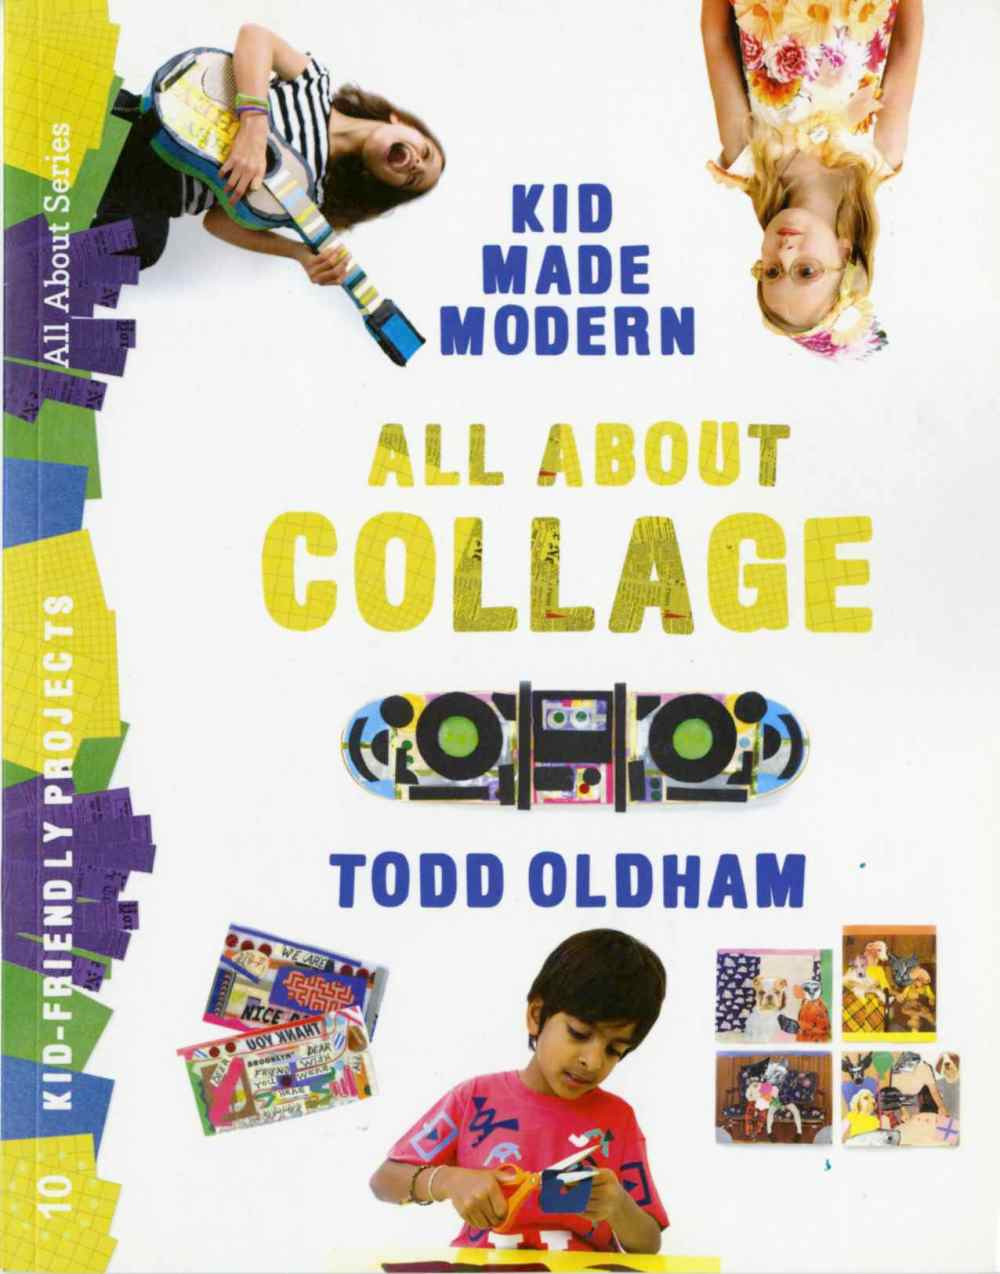 Kid Made Modern all about collage